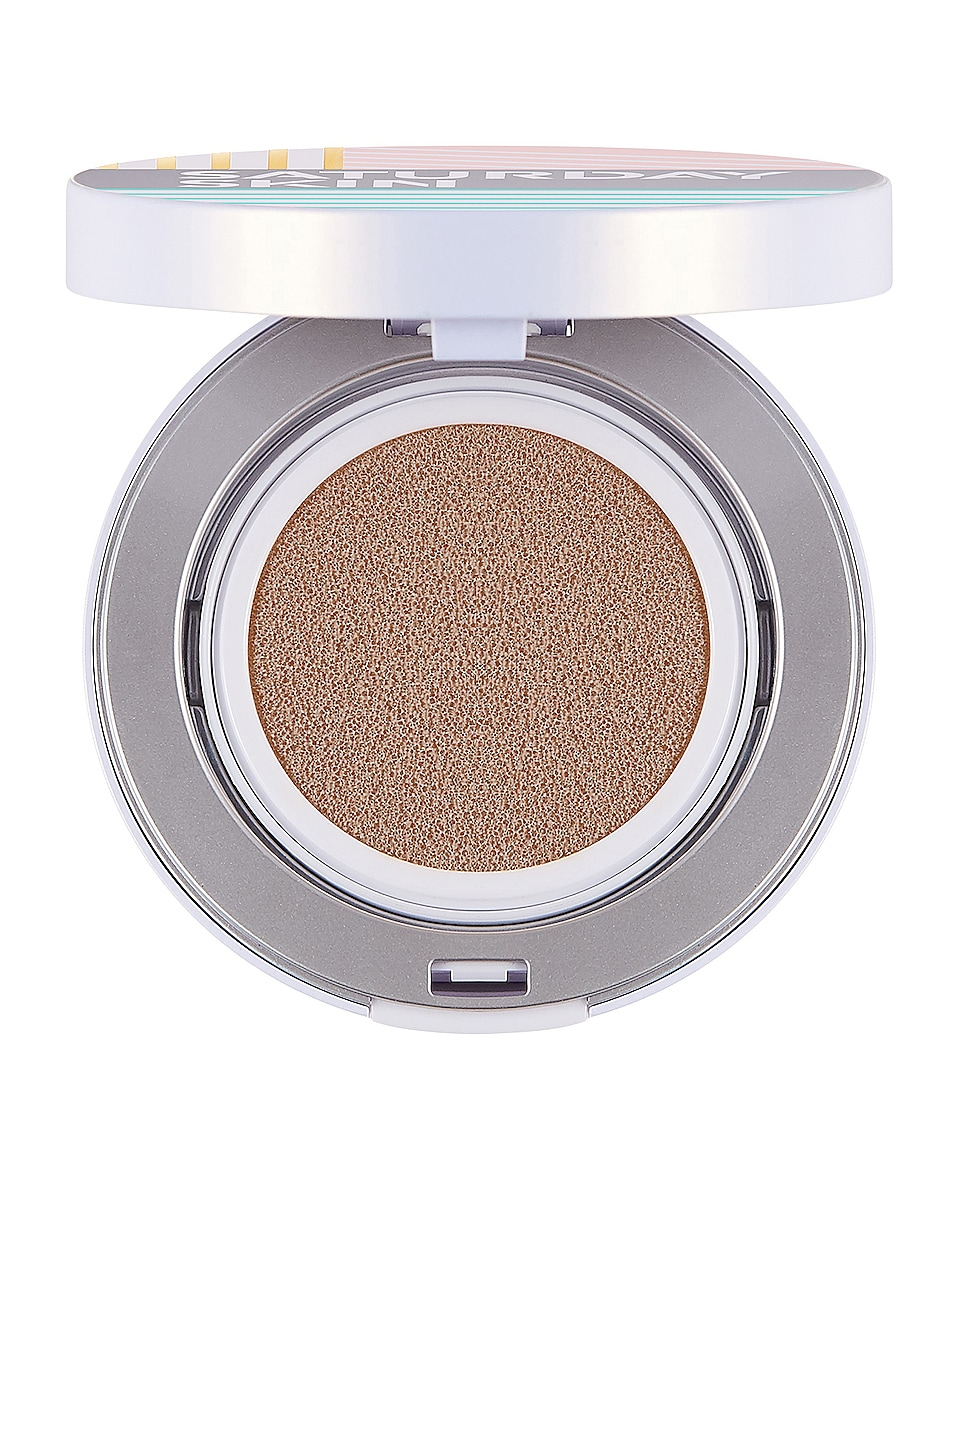 Saturday Skin All Aglow Sunscreen Perfecting Cushion Compact SPF 50 in Goldie